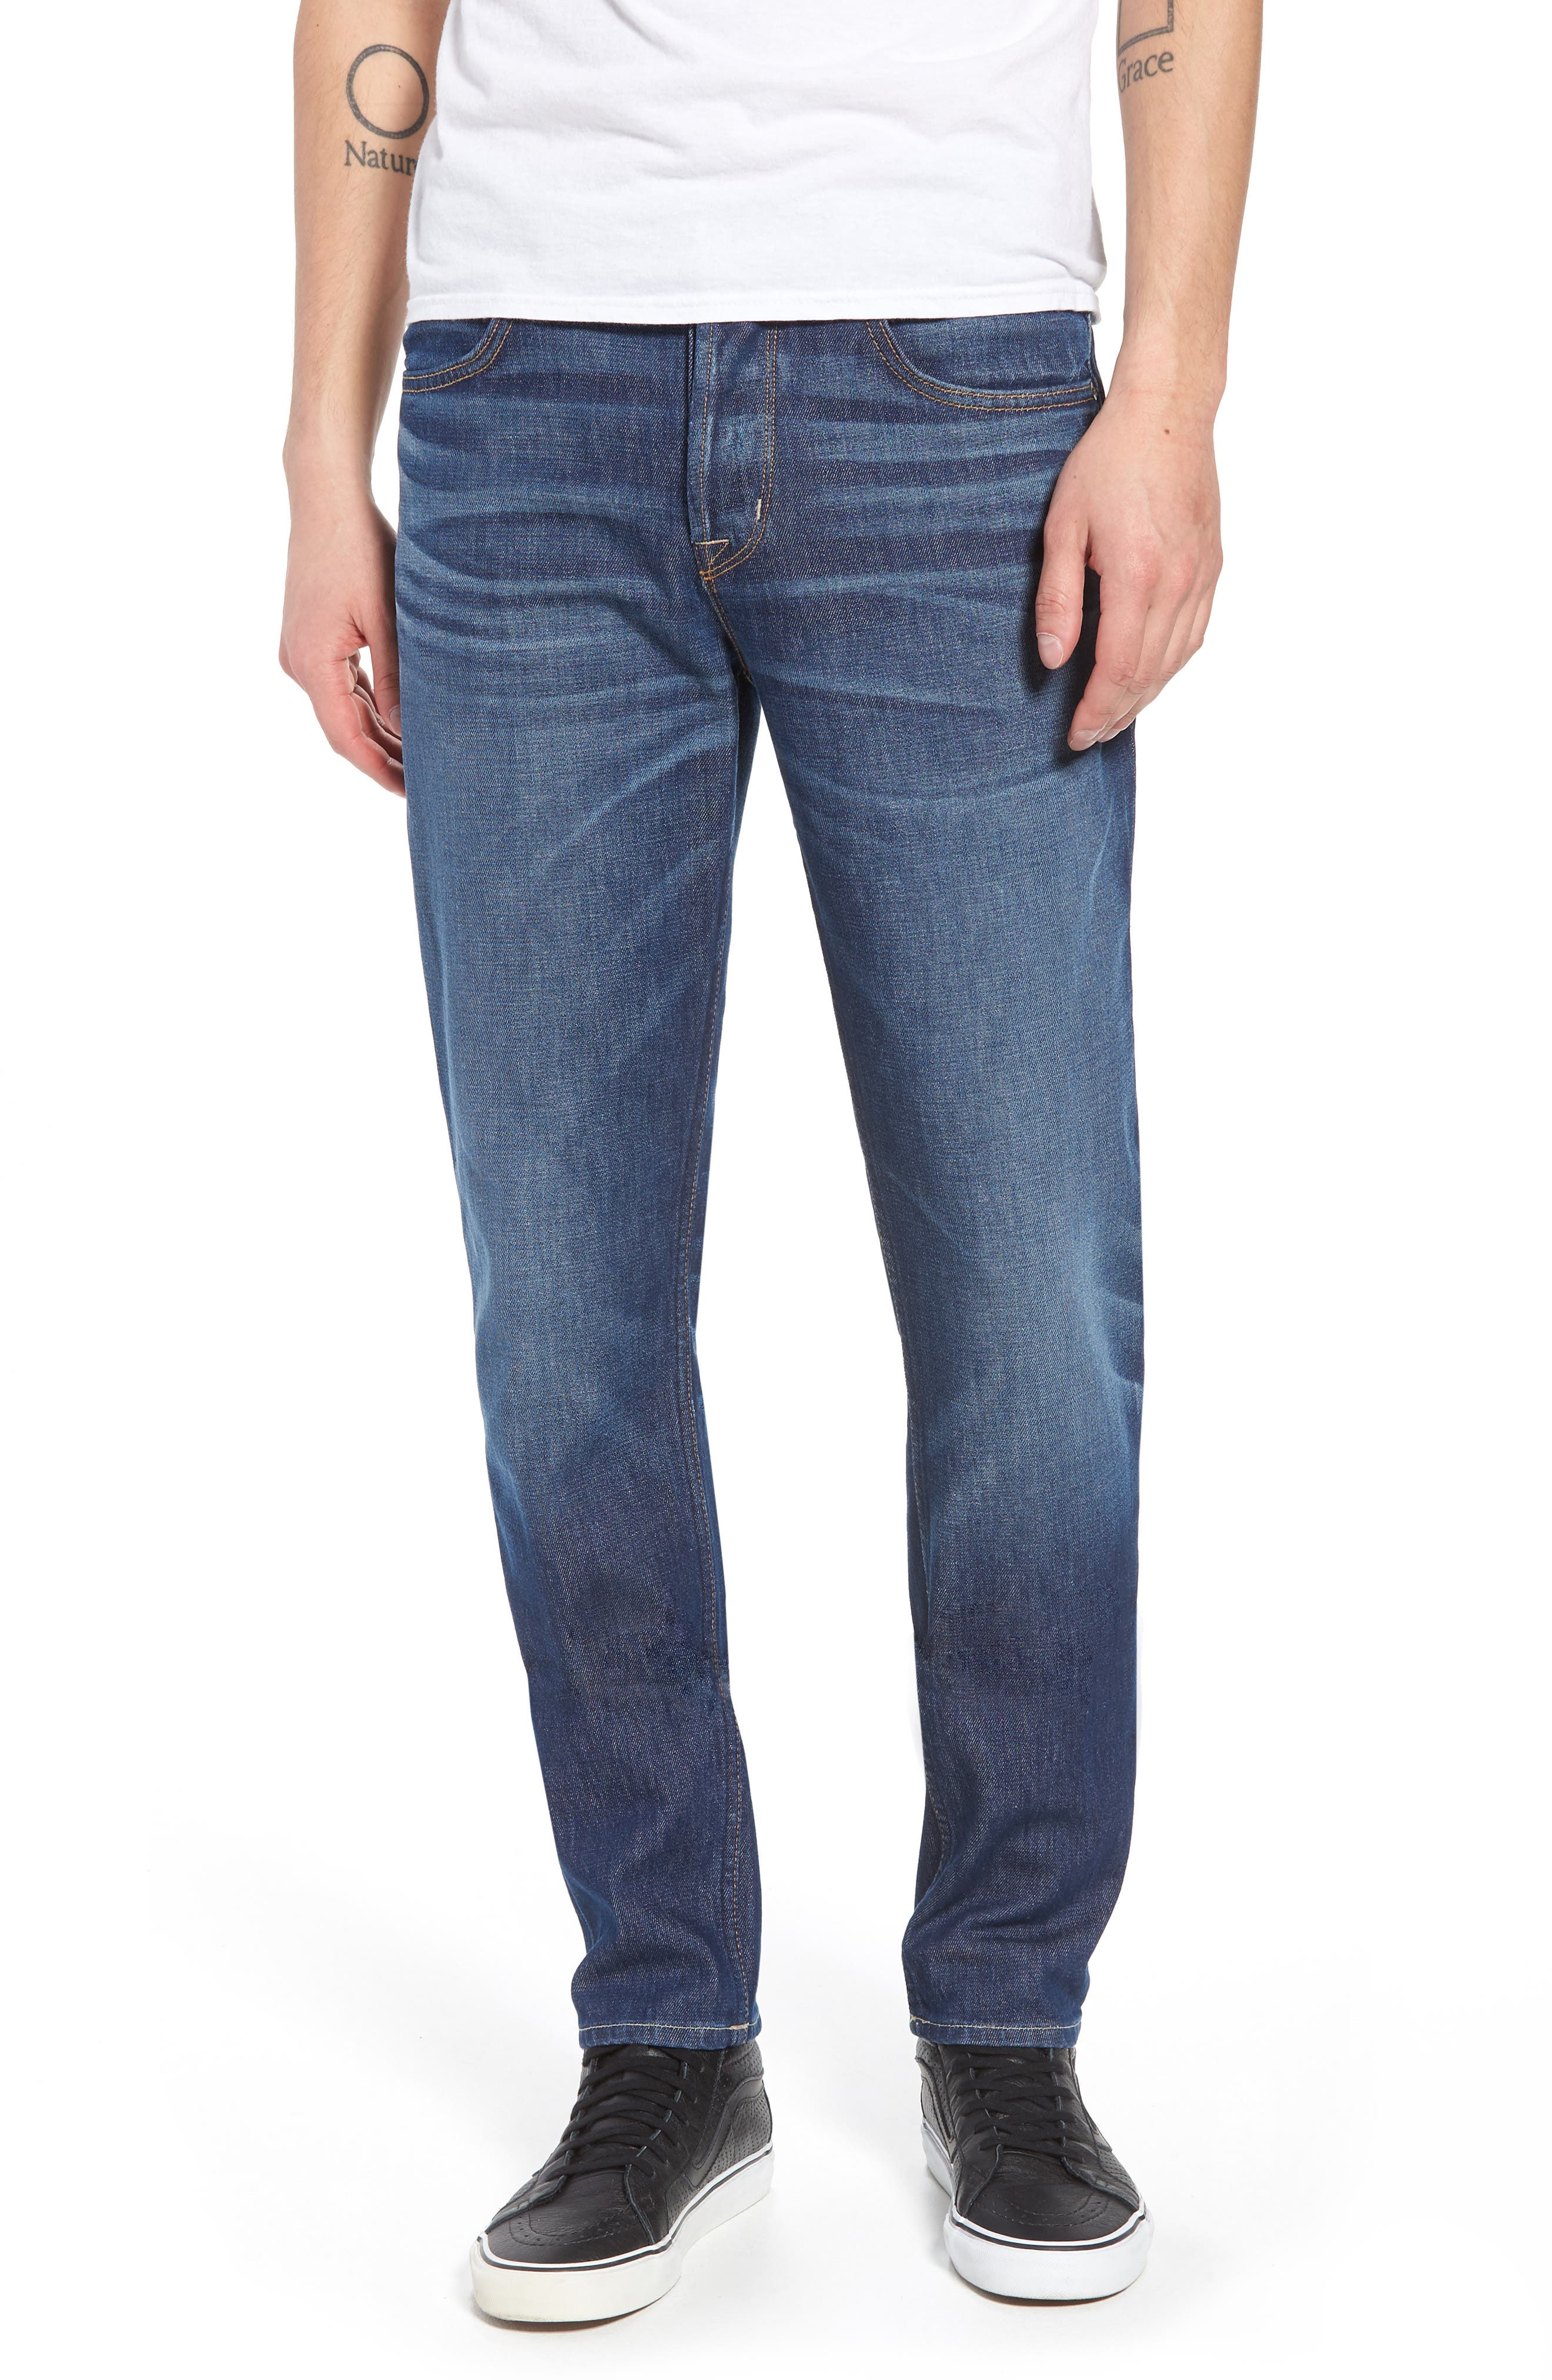 Axl Skinny Fit Jeans,                             Main thumbnail 1, color,                             Ignites